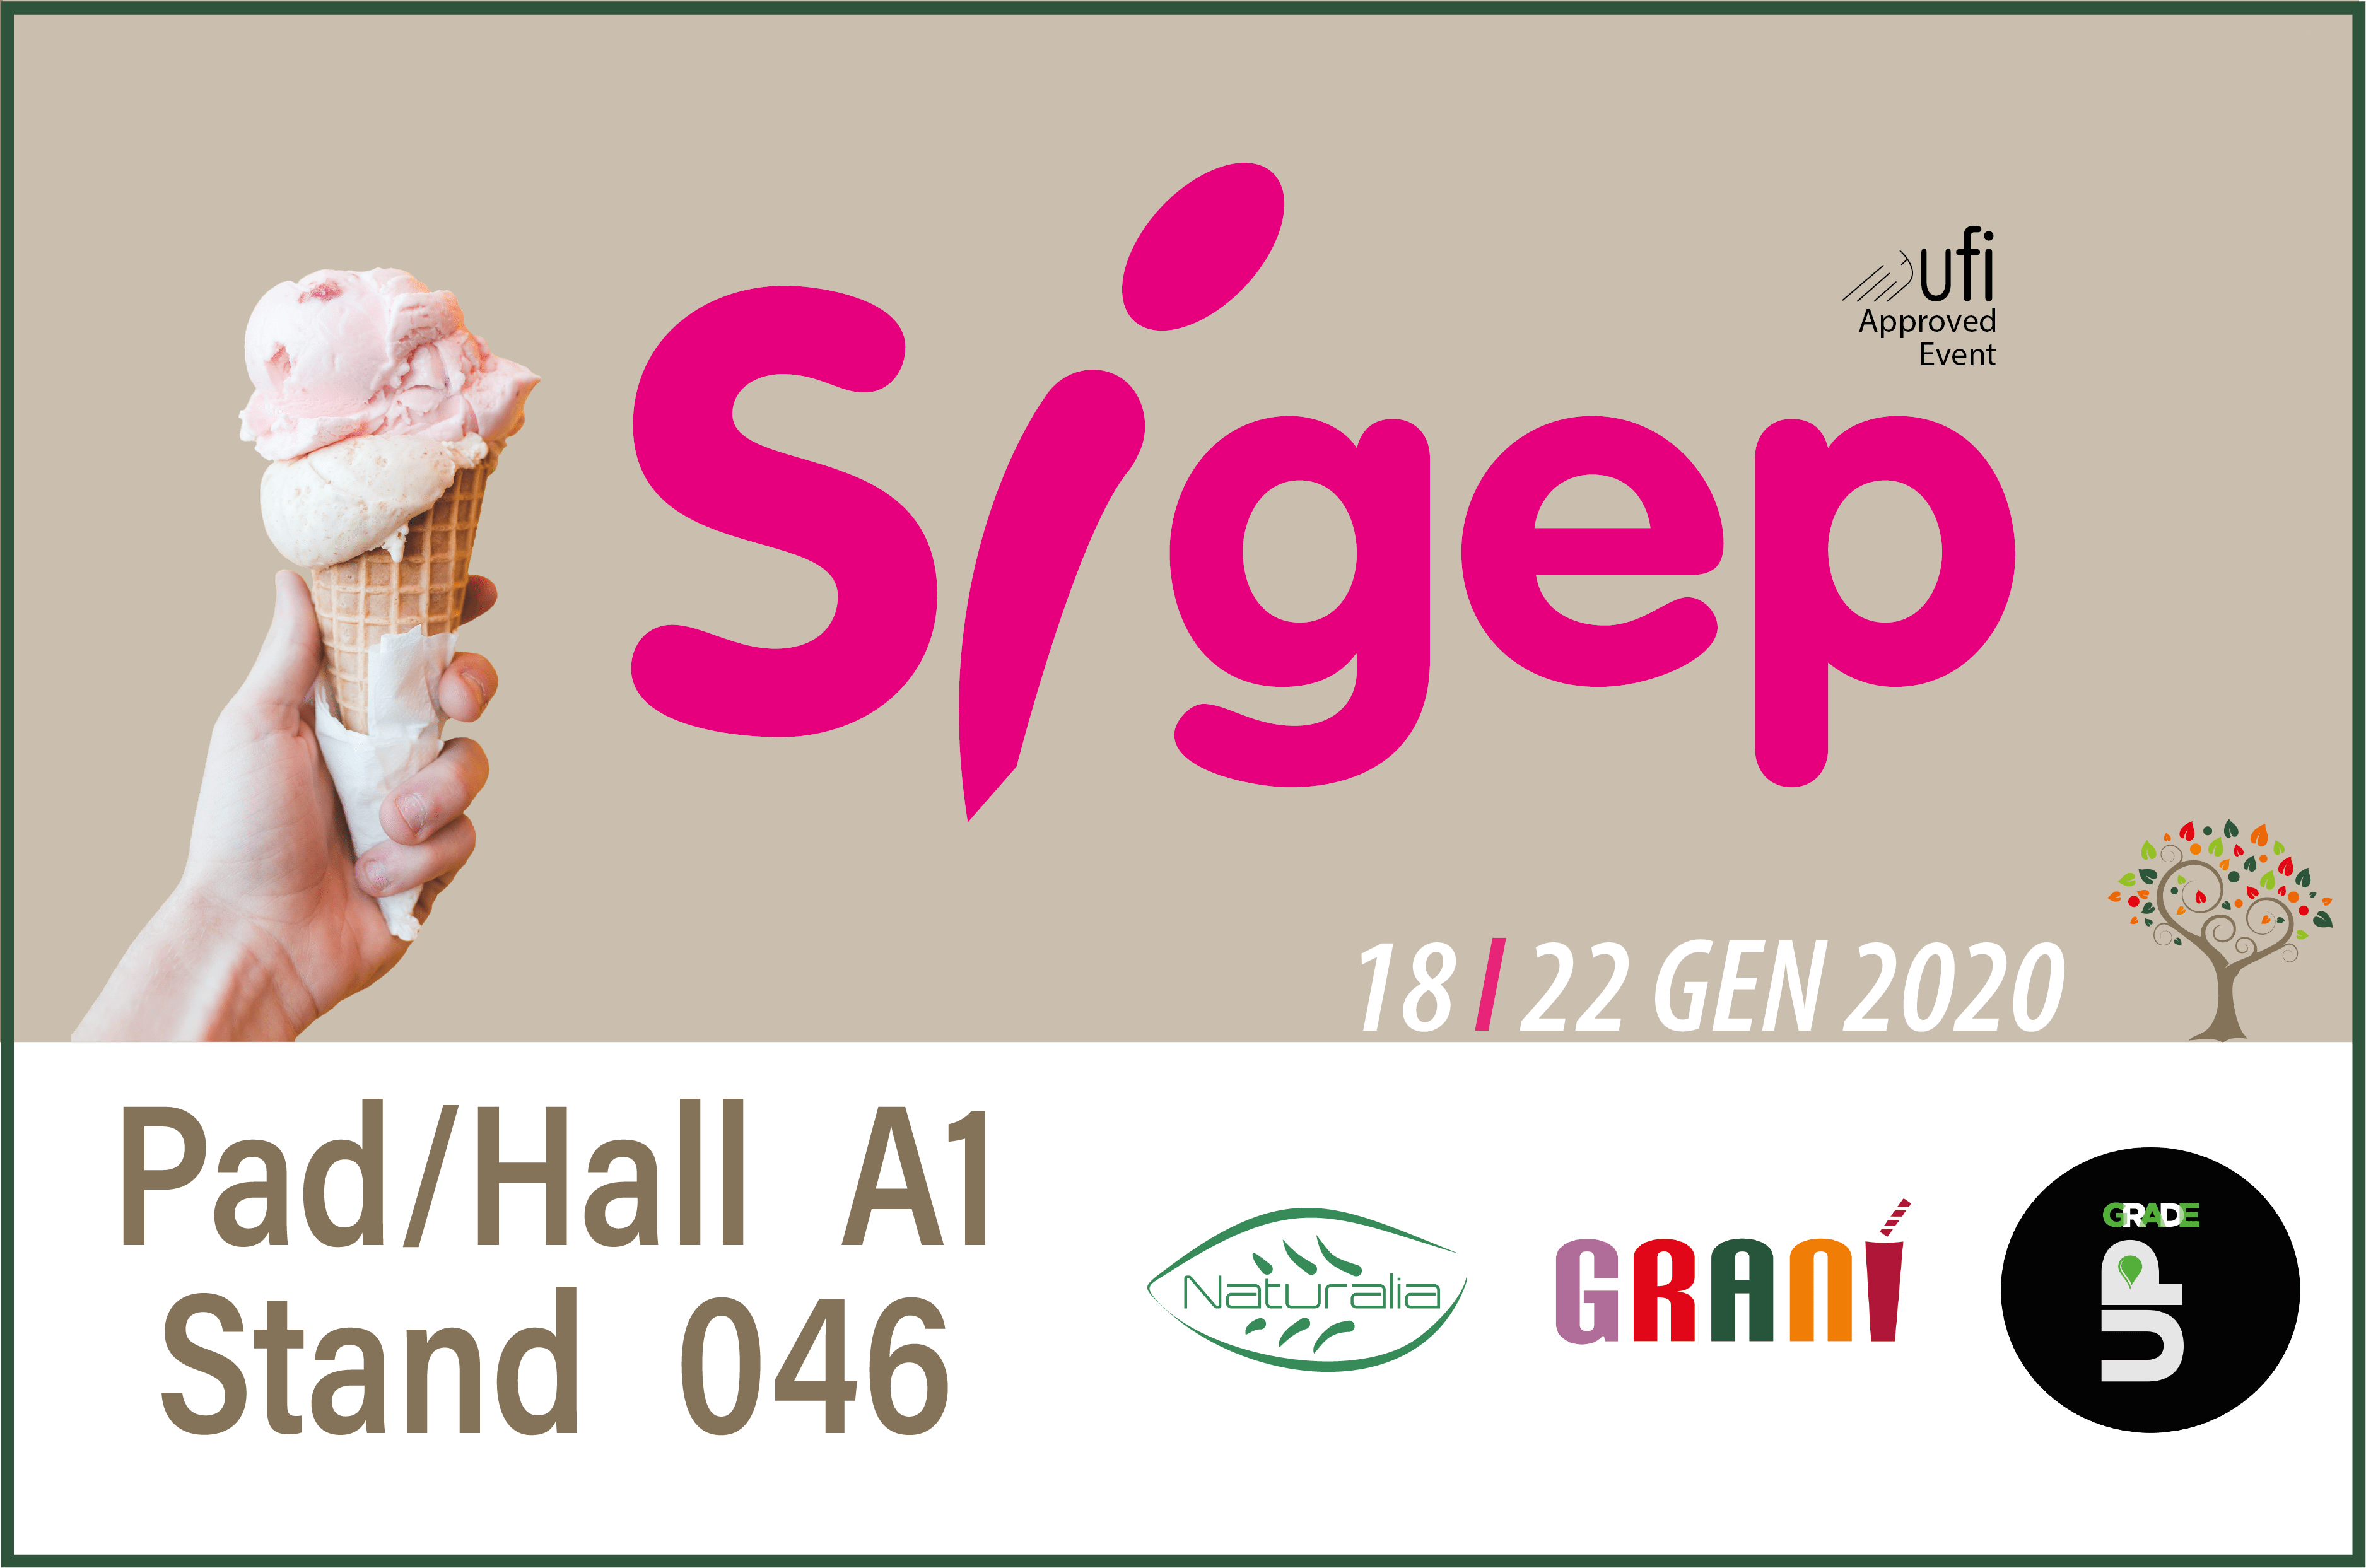 OUR EXHIBITION – SIGEP 2020